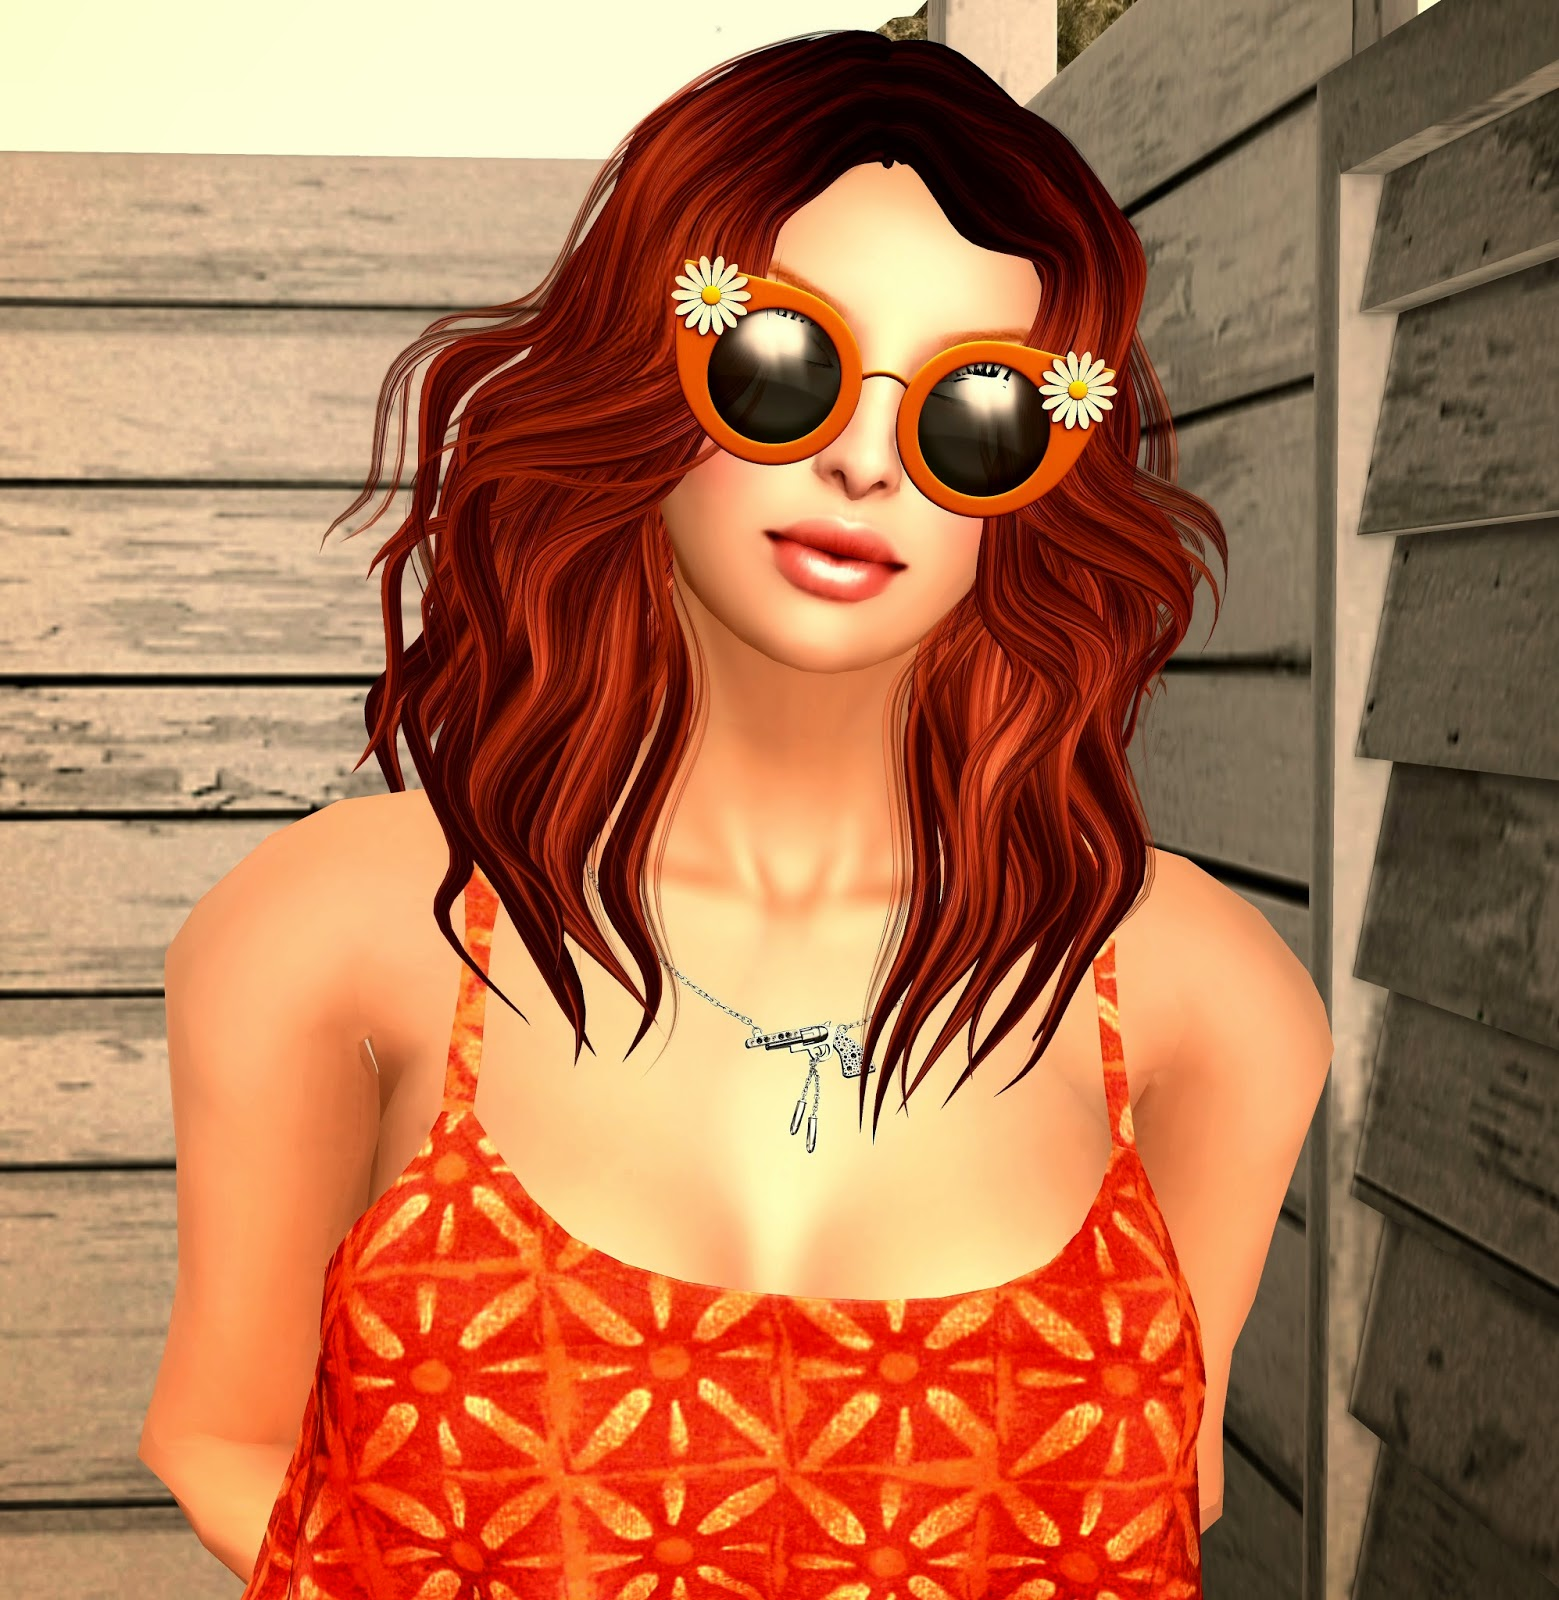 a&a shady daisies sunglasses,faboo blousey tank, cae caliber necklace